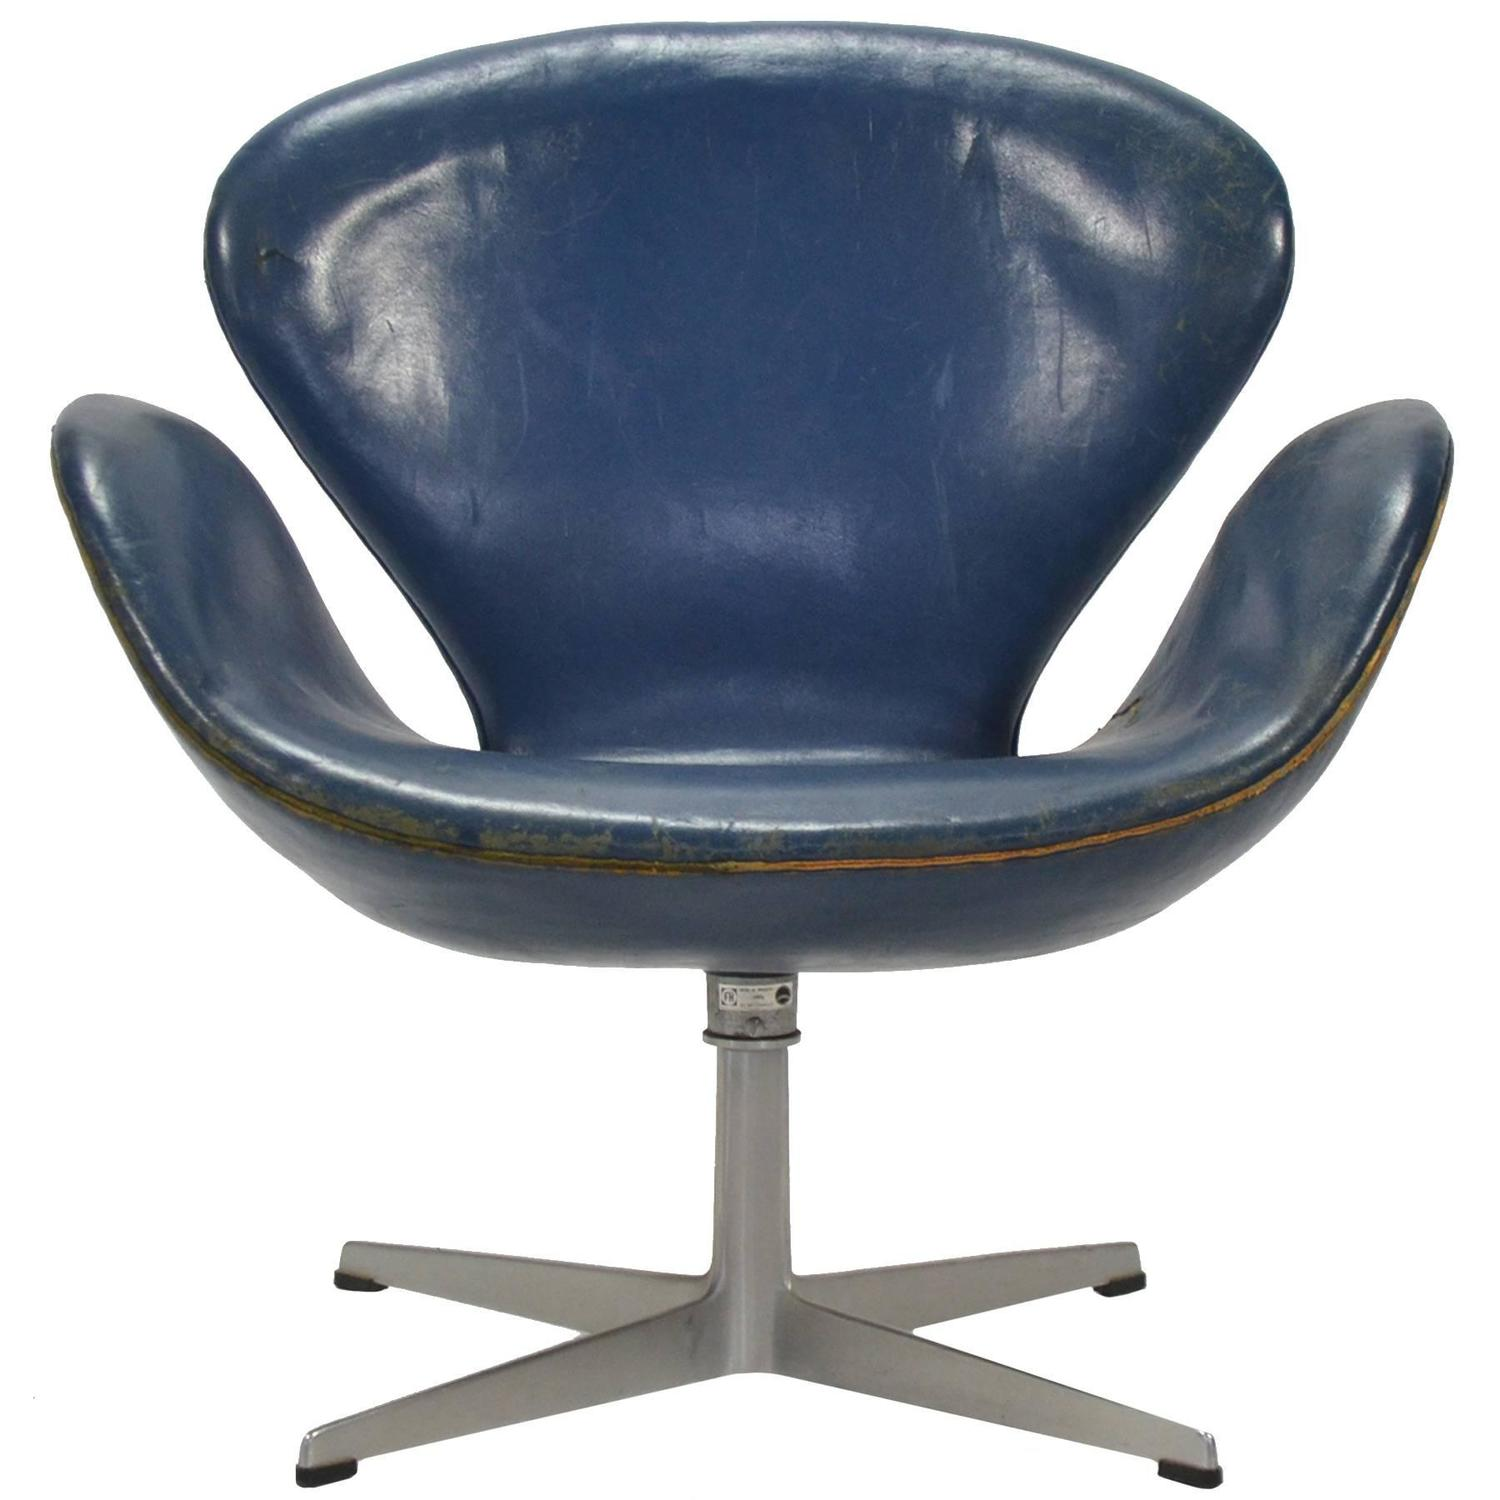 This arne jacobsen swan chair in cognac leather by fritz hansen is no - Arne Jacobsen Swan Chair In Original Blue Leather By Fritz Hansen